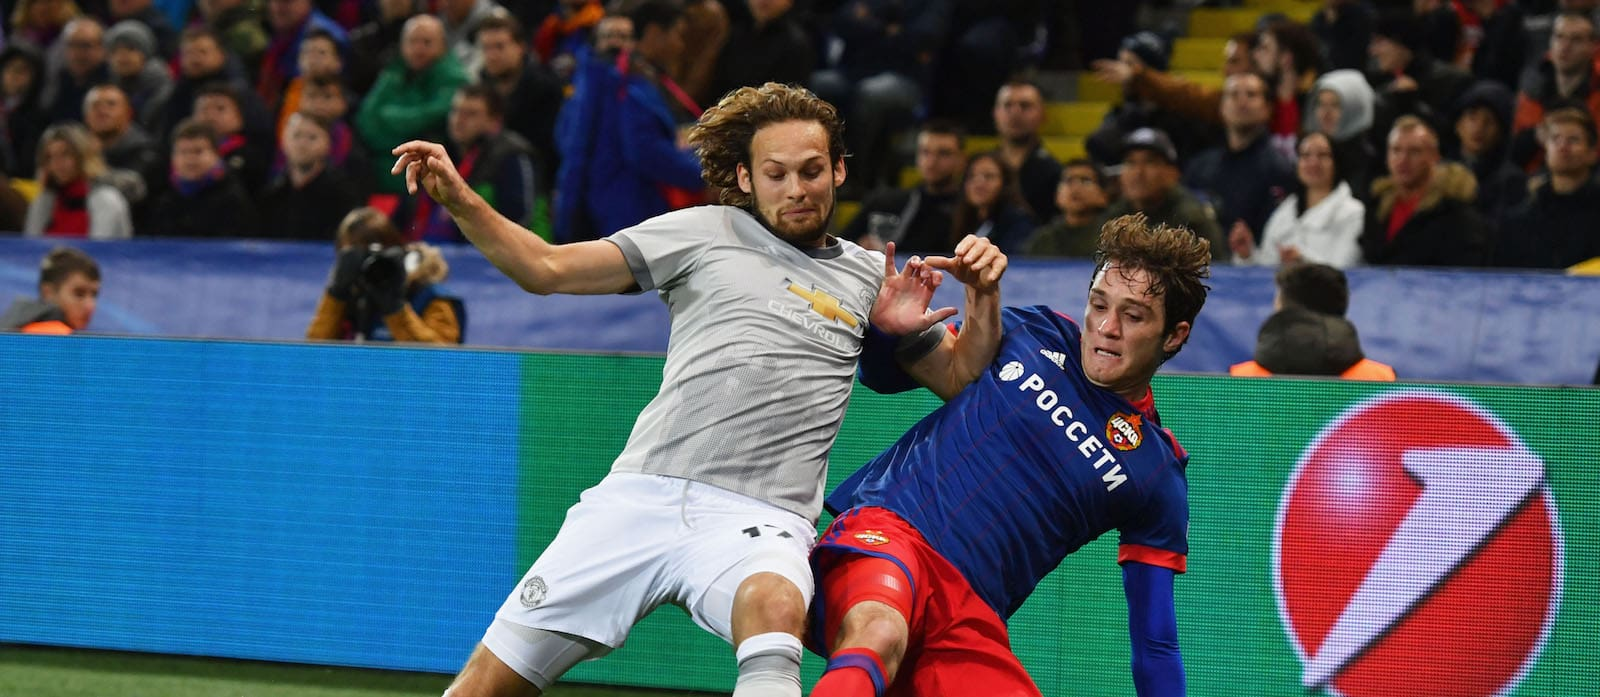 Ajax still hopeful of reaching an agreement for Daley Blind: report